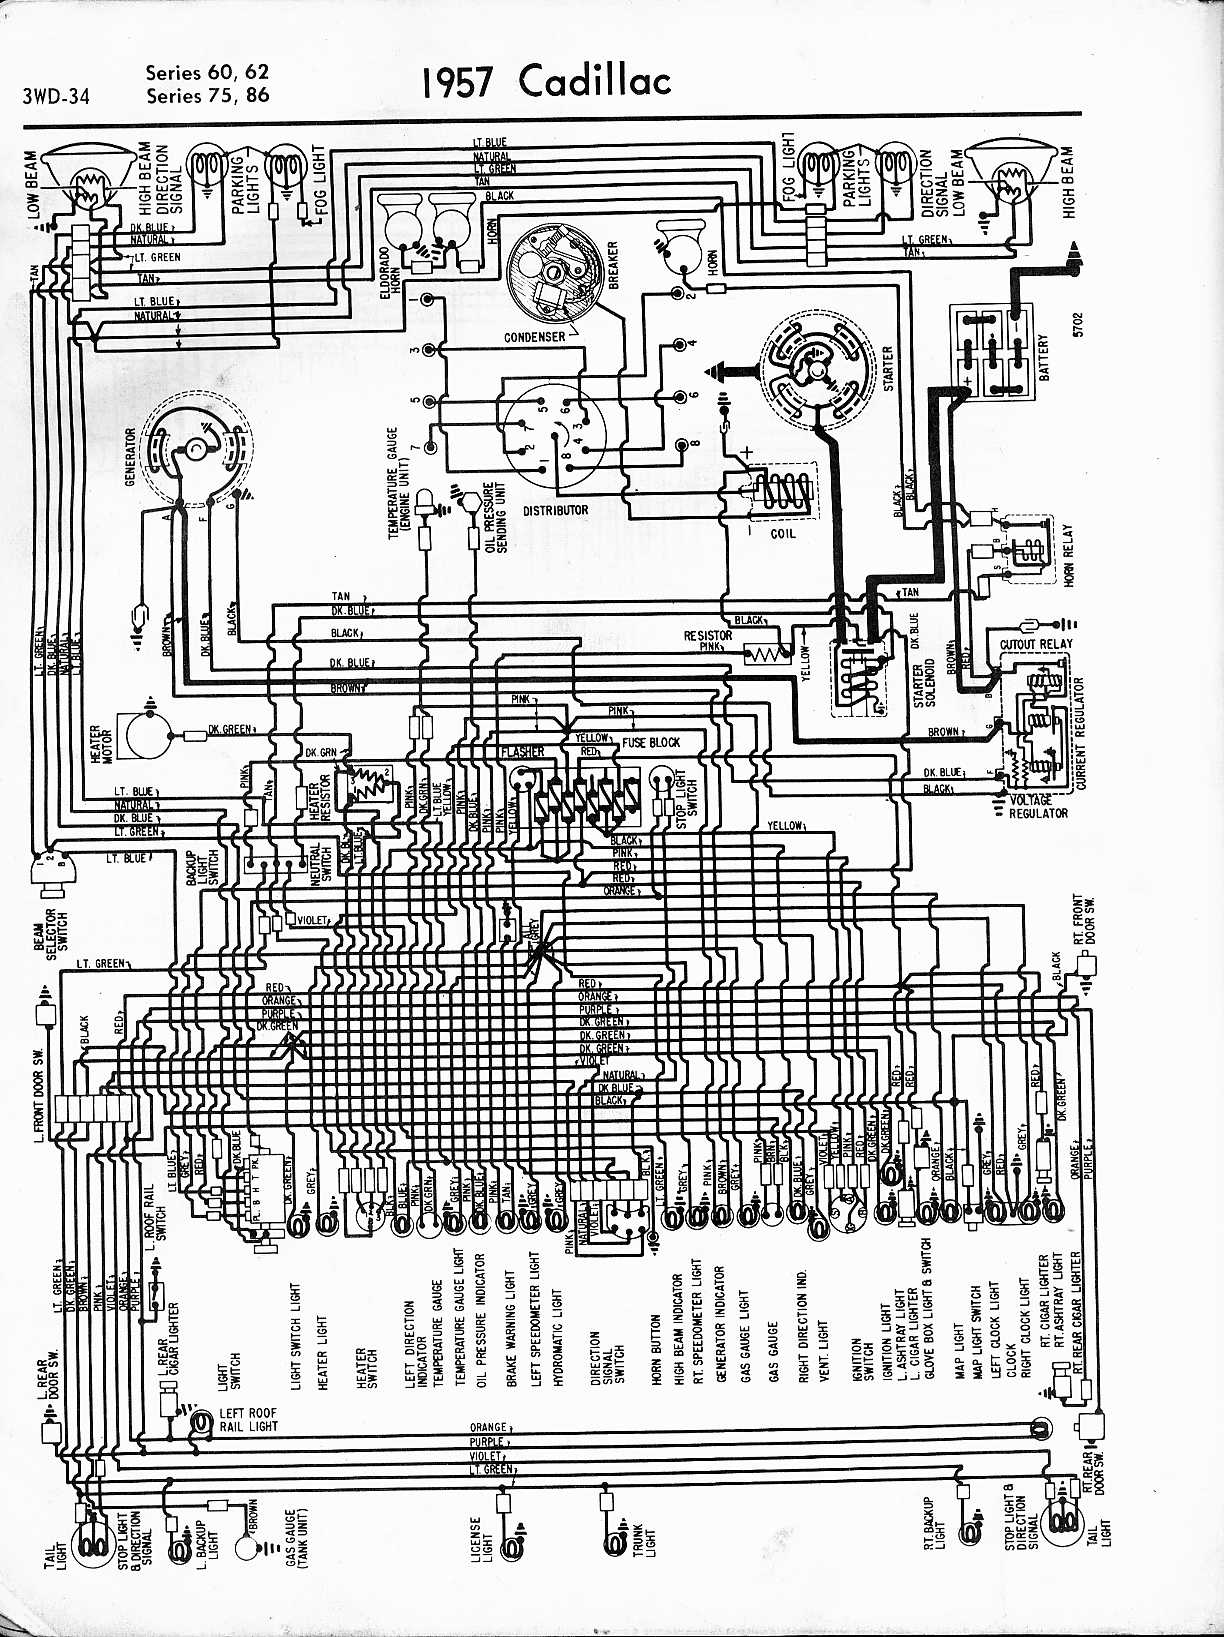 Cadillac Alternator Wiring Diagram Library 1965 Chevy 283 1956 Simple Rh David Huggett Co Uk 1996 Eldorado